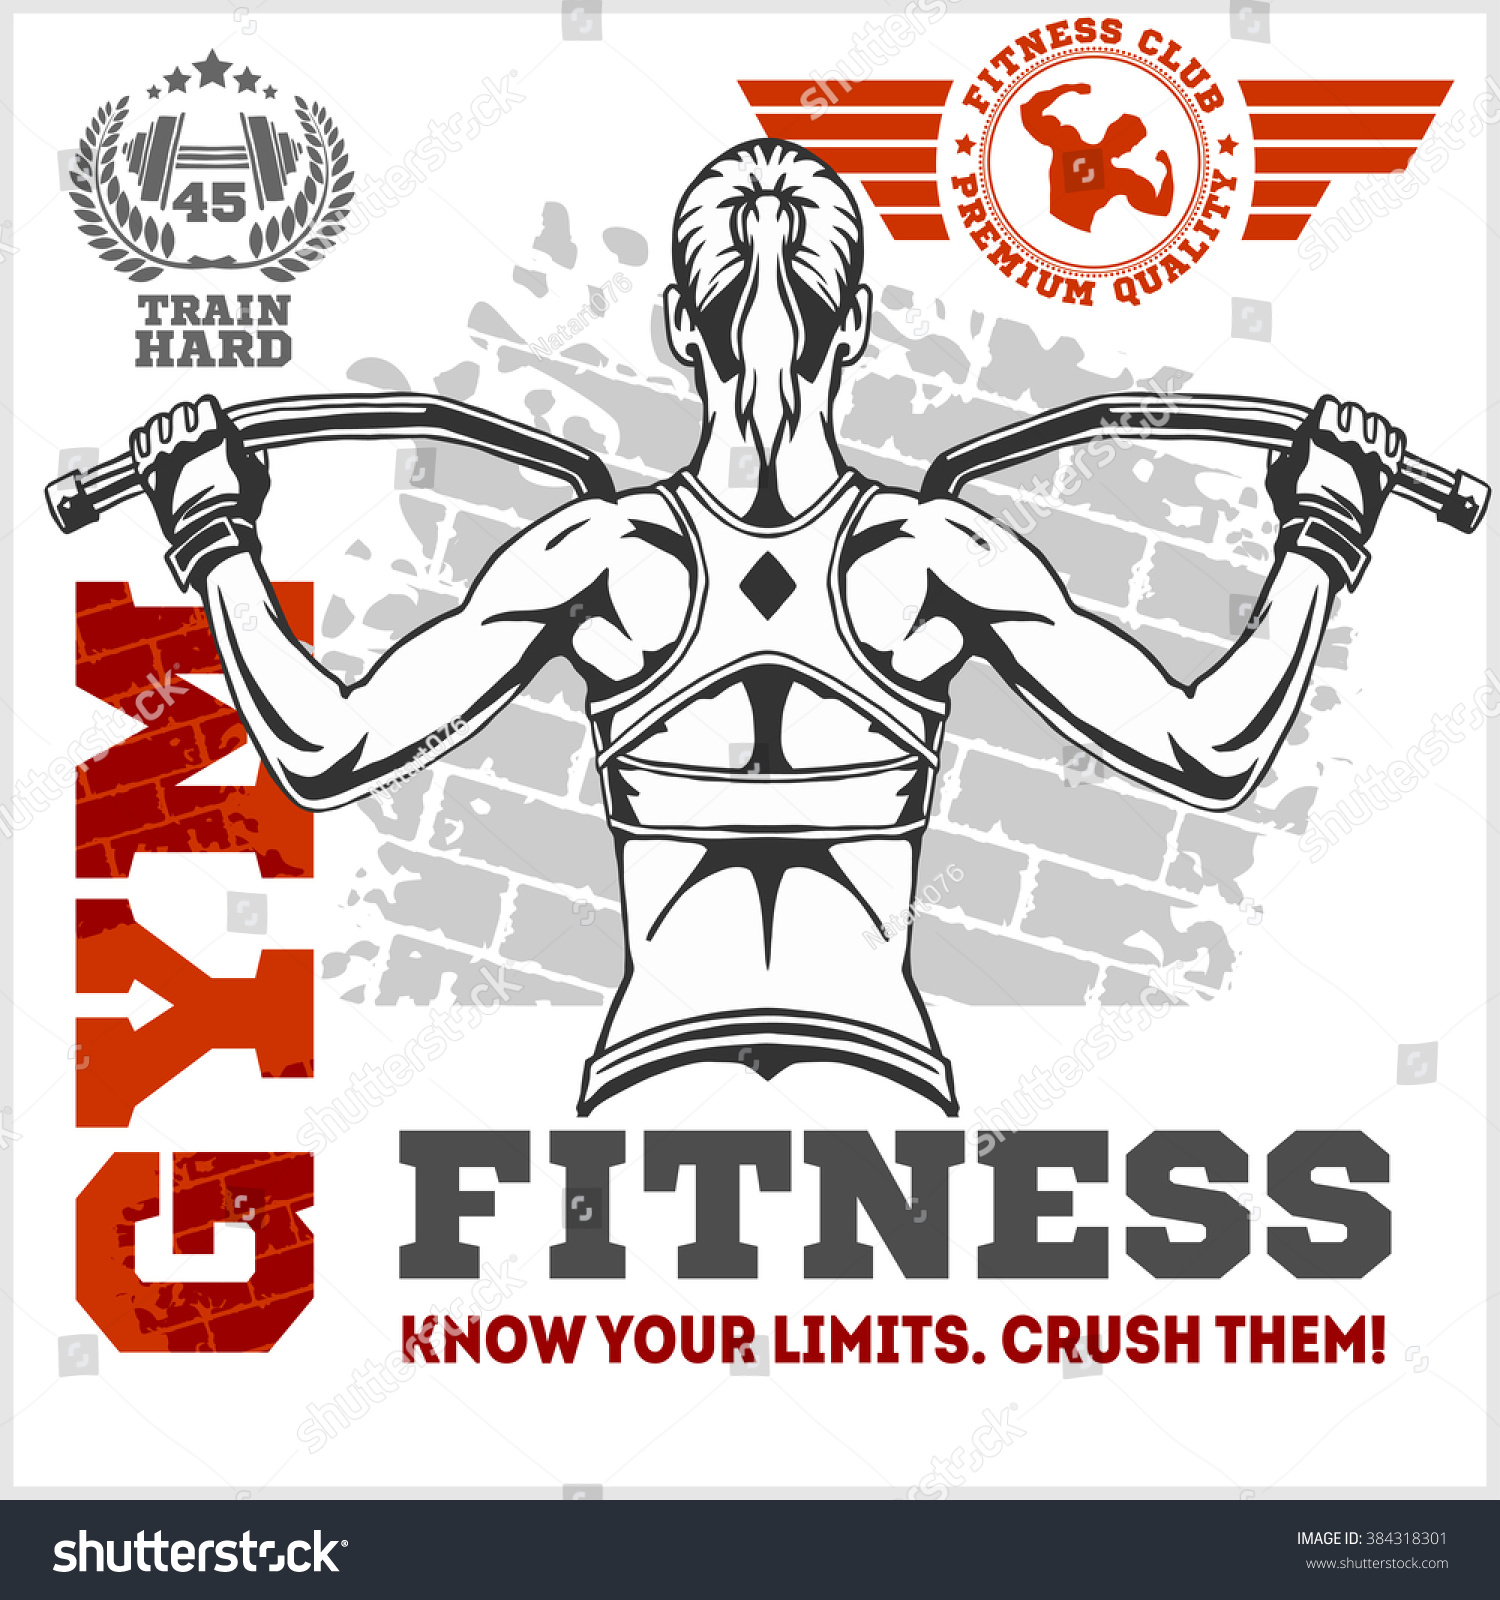 Fitness Club Gym Banner Poster Design Stock Vector (2018) 384318301 ... for Bodybuilding Poster Design  585hul